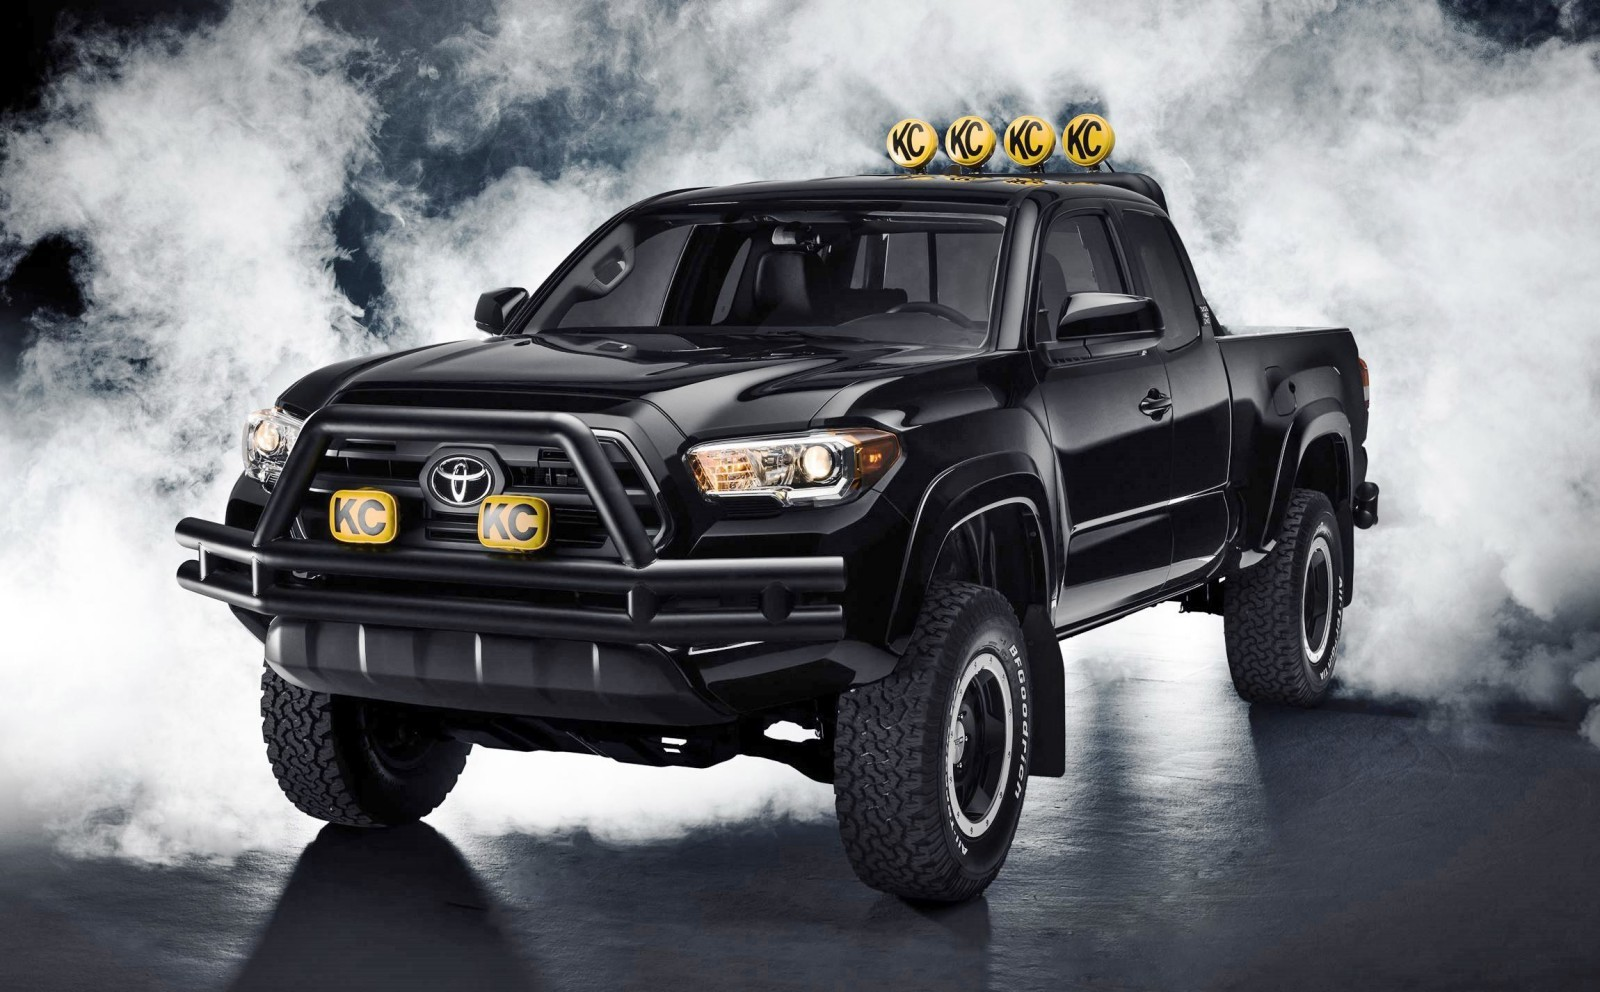 2016 toyota tacoma mcfly bttf. Black Bedroom Furniture Sets. Home Design Ideas